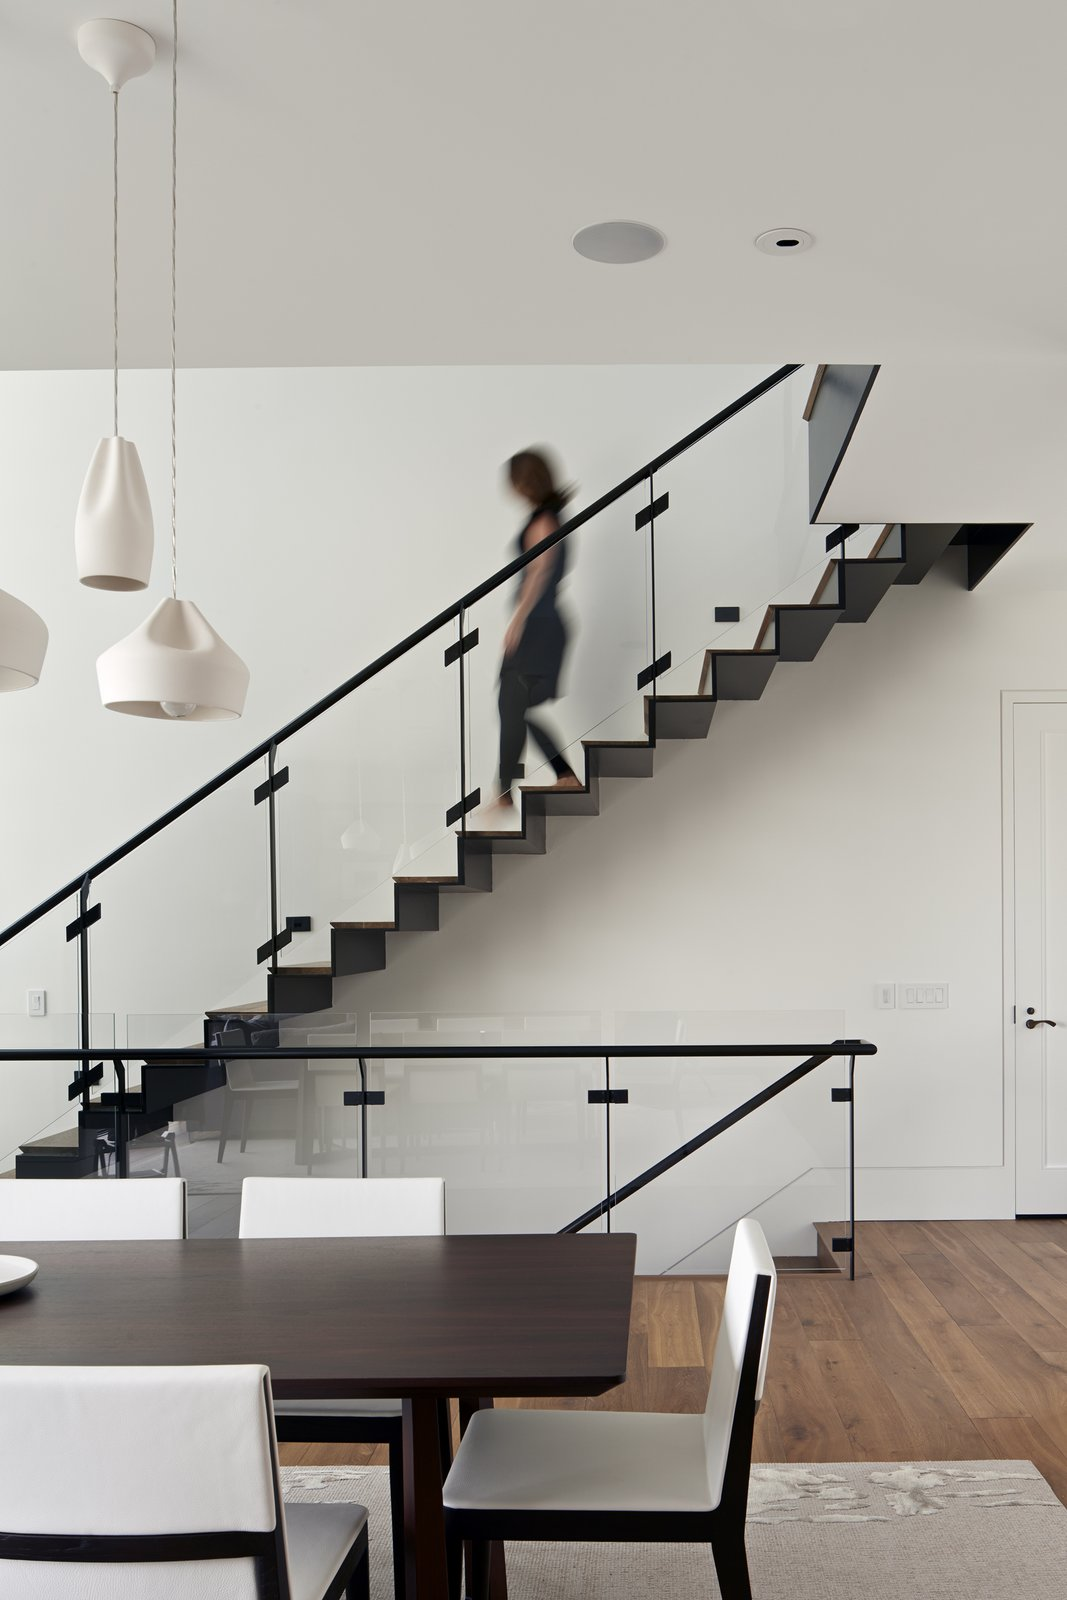 This staircase connects the common area to the guest suites above and the wine cellar below. The interplay of glass and metal on the handrails is a one of the architects' favorite details. Tagged: Staircase, Wood Tread, Metal Railing, and Glass Railing. 190+ Best Modern Staircase Ideas by Dwell